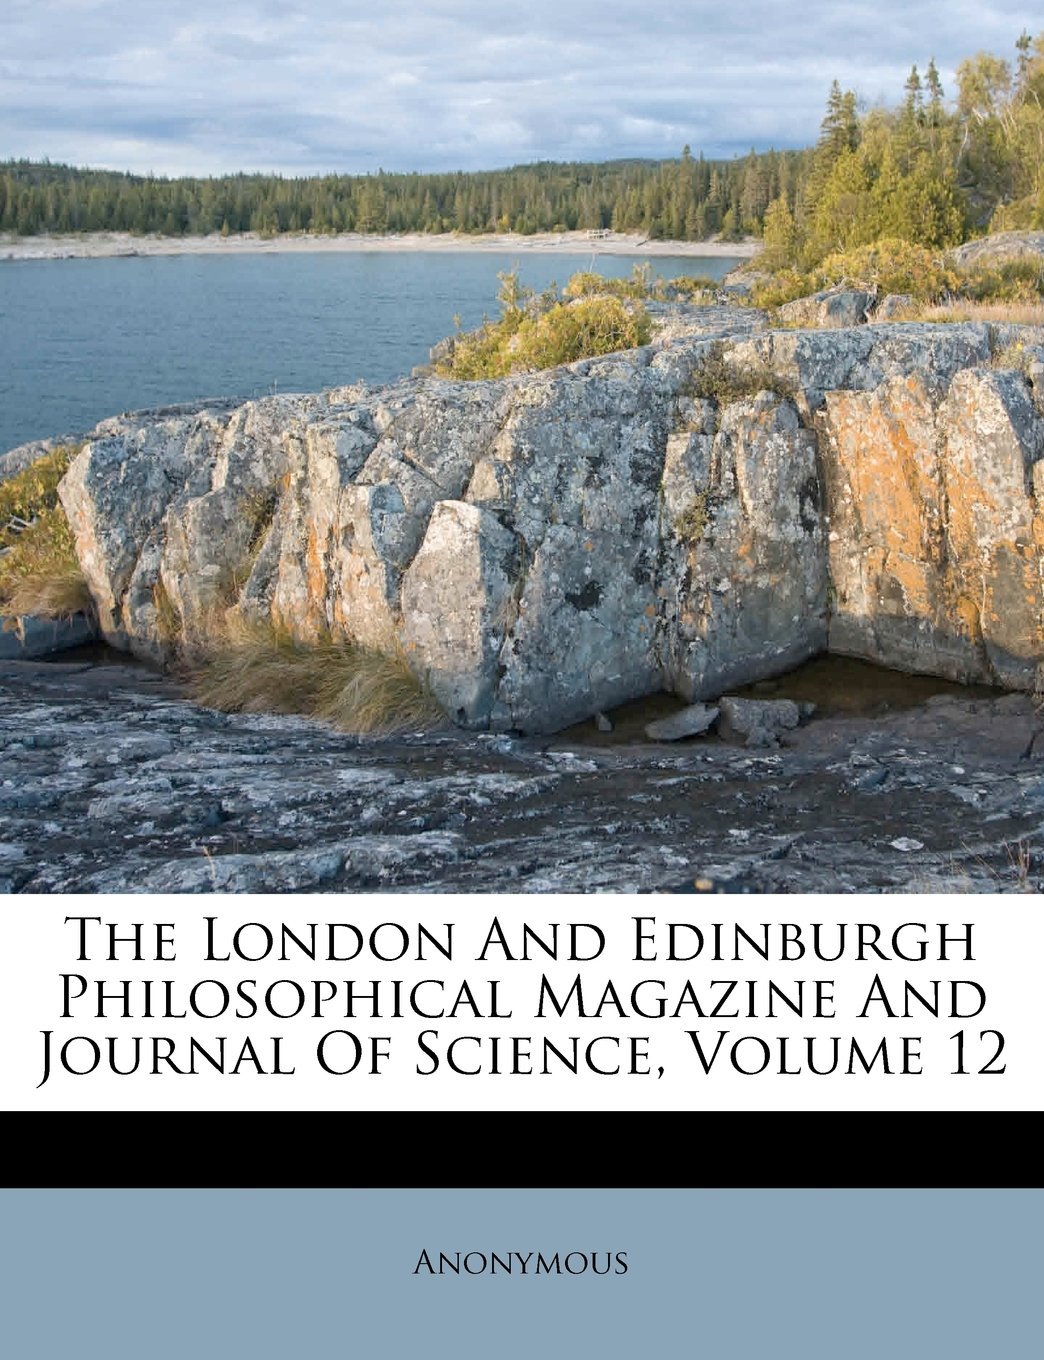 The London And Edinburgh Philosophical Magazine And Journal Of Science, Volume 12 ebook